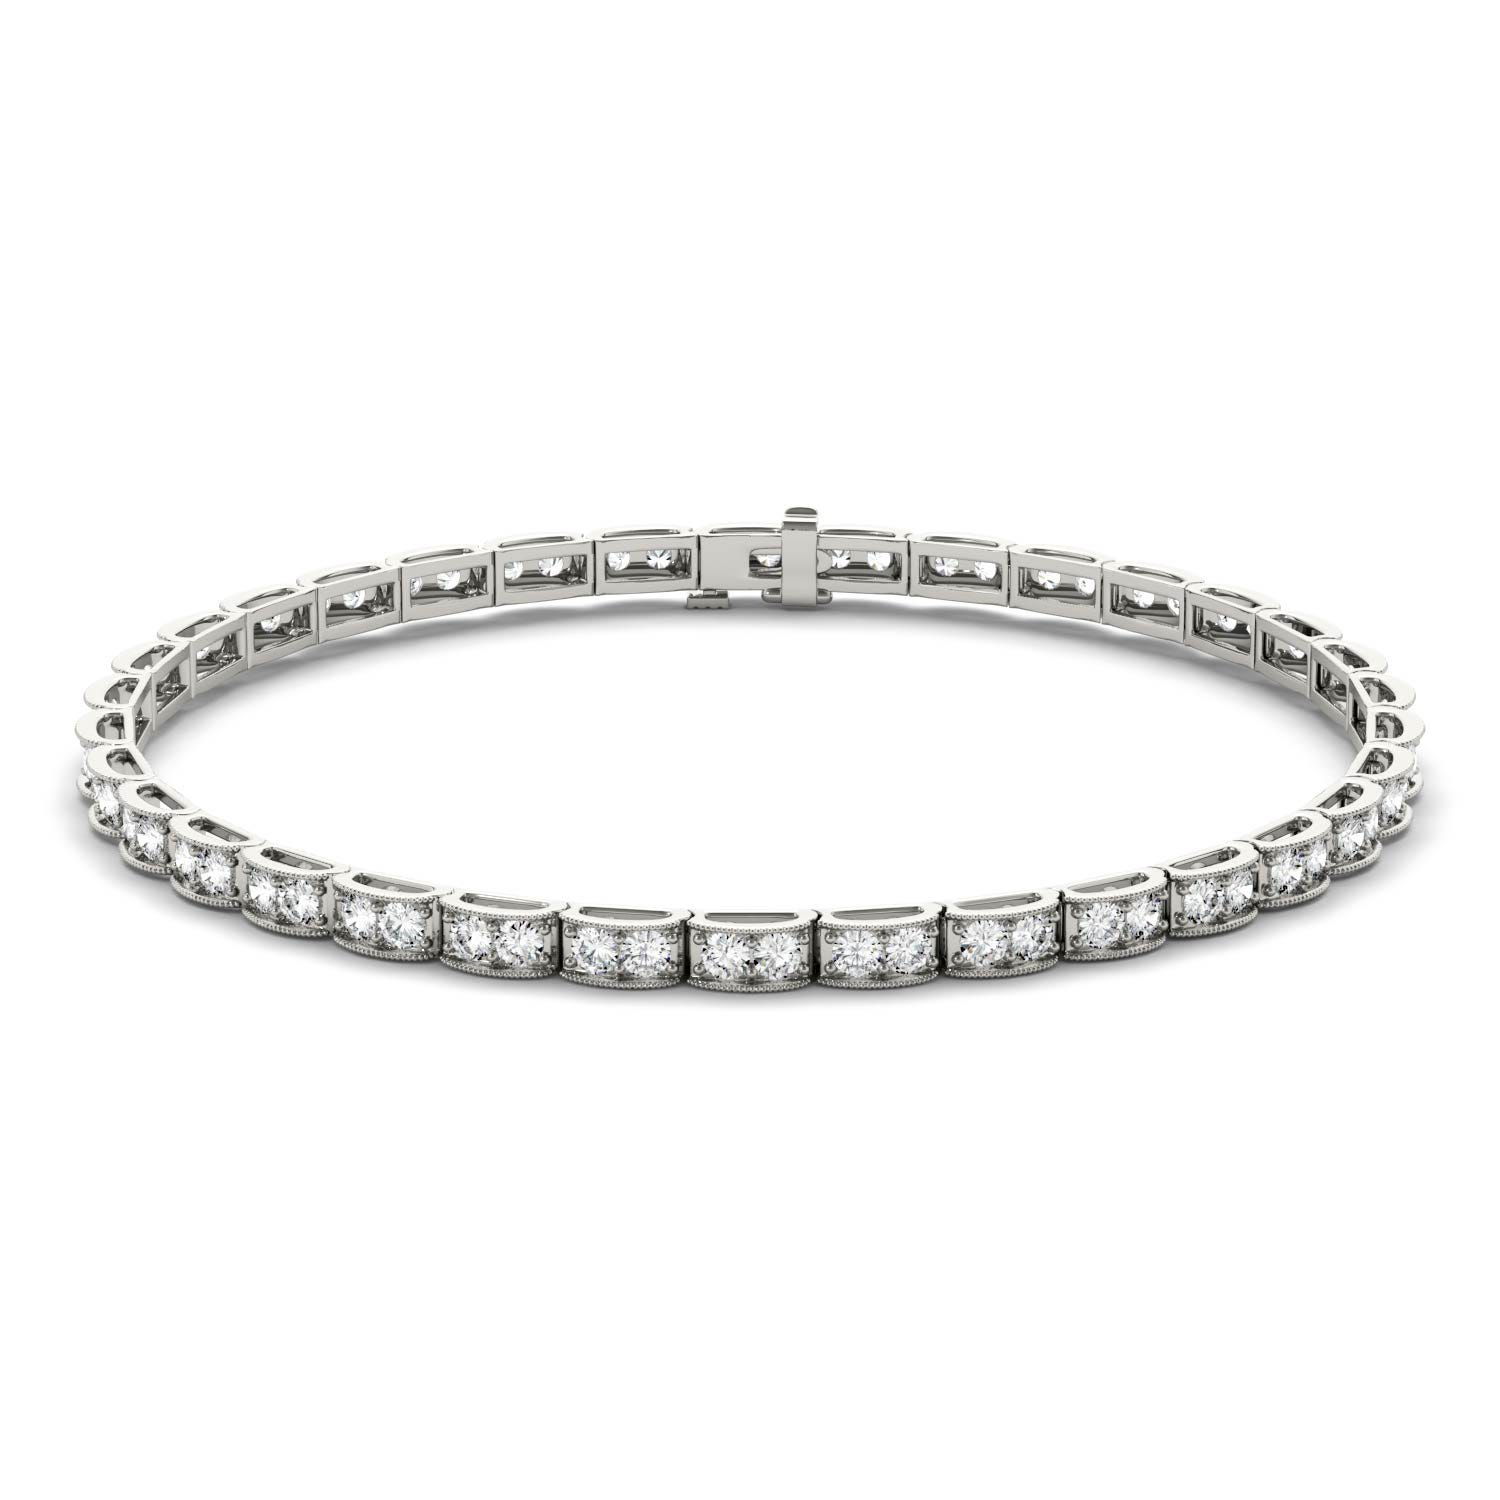 29711a2142729 How to Buy a Diamond Tennis Bracelet – Jewelry Guide